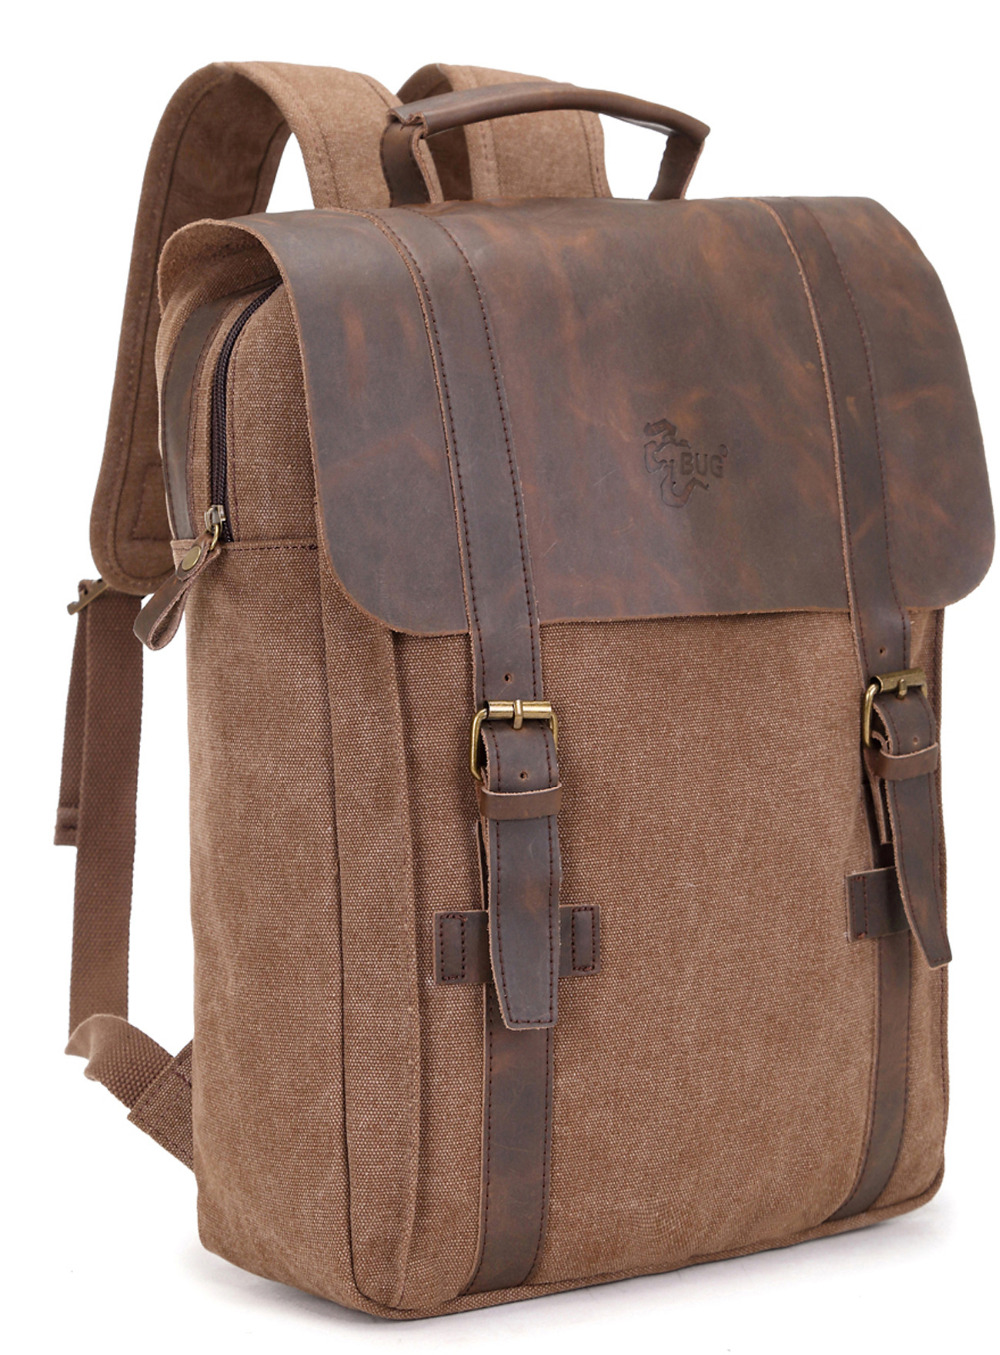 Best Backpacks For Men P18jOTcq